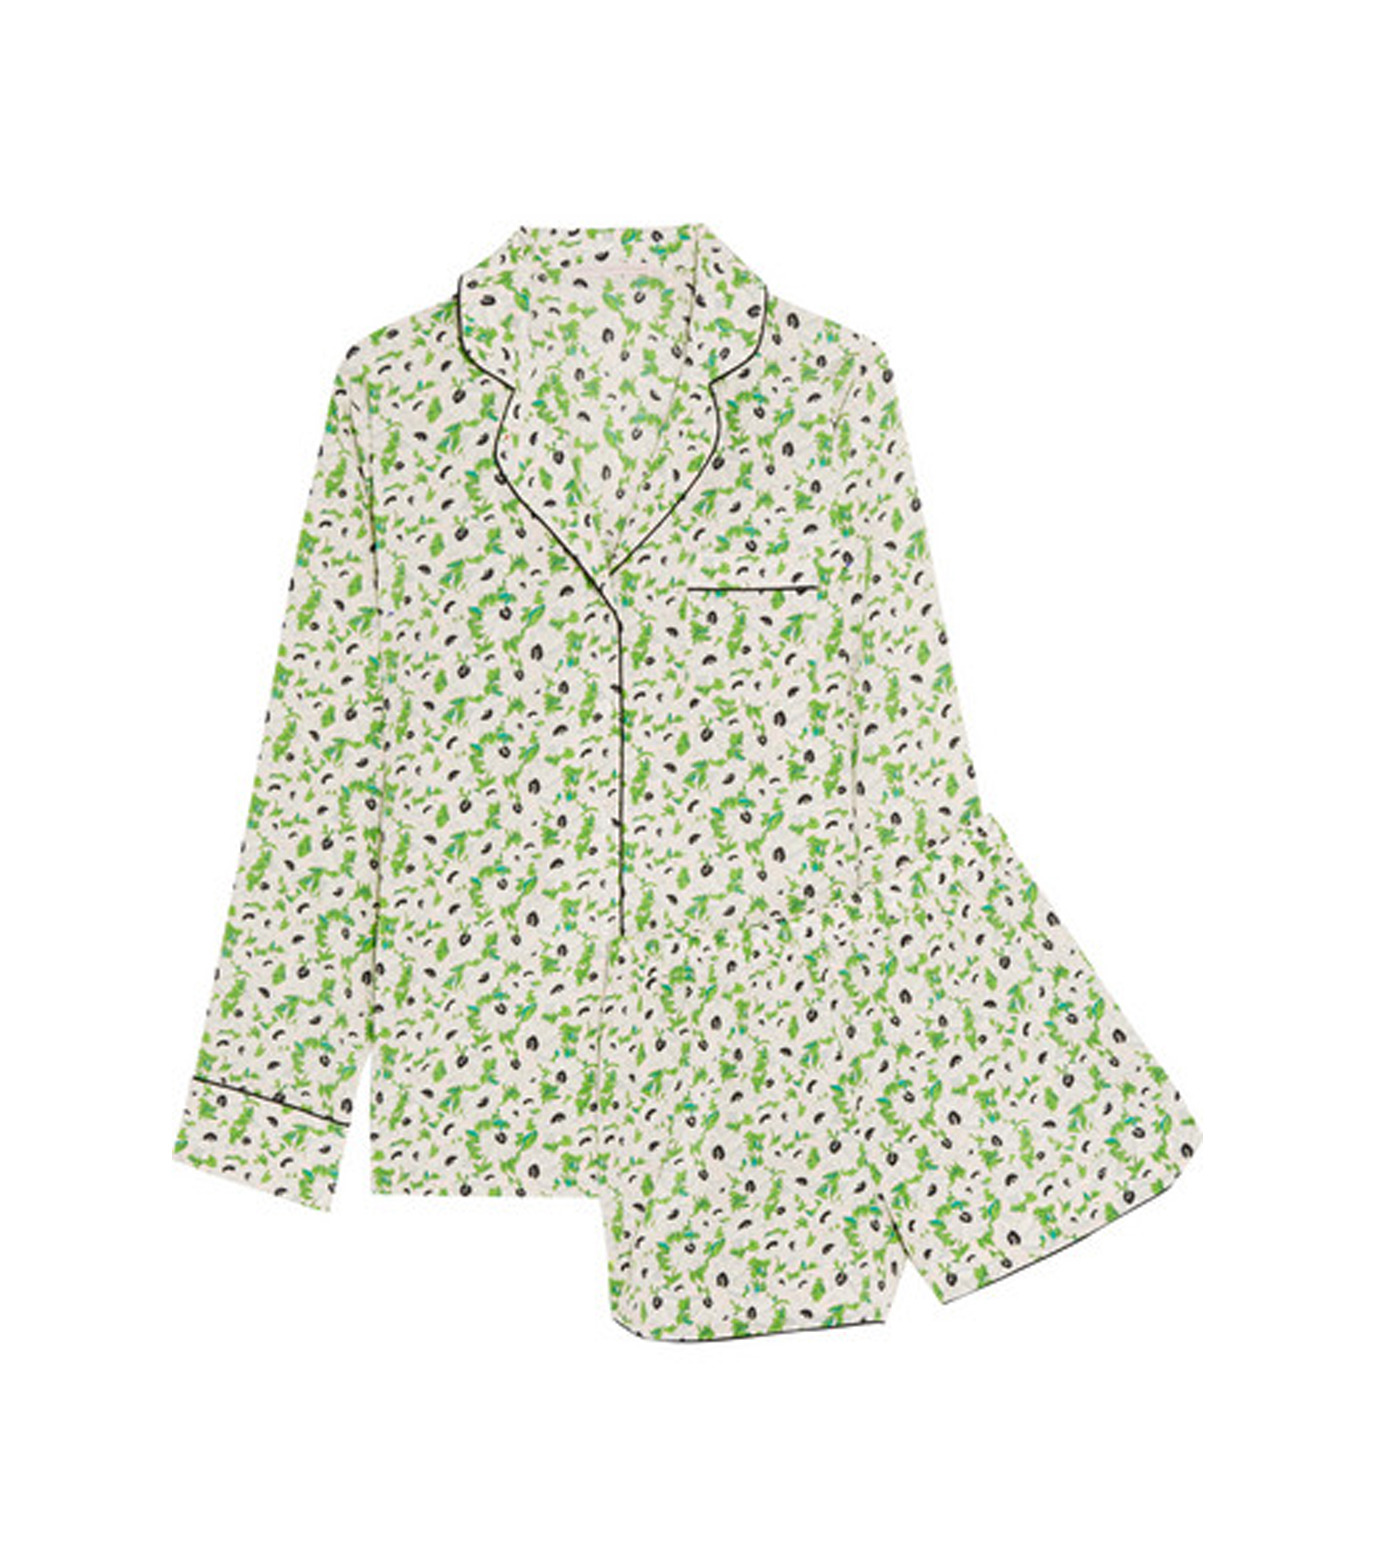 Stella McCartney Lingerie(ステラ マッカートニー ランジェリー)のPOPPY SNOOZING LONG PJ SET SL-LIGHT GREEN(LINGERIE/LINGERIE)-S108-251-21 拡大詳細画像1